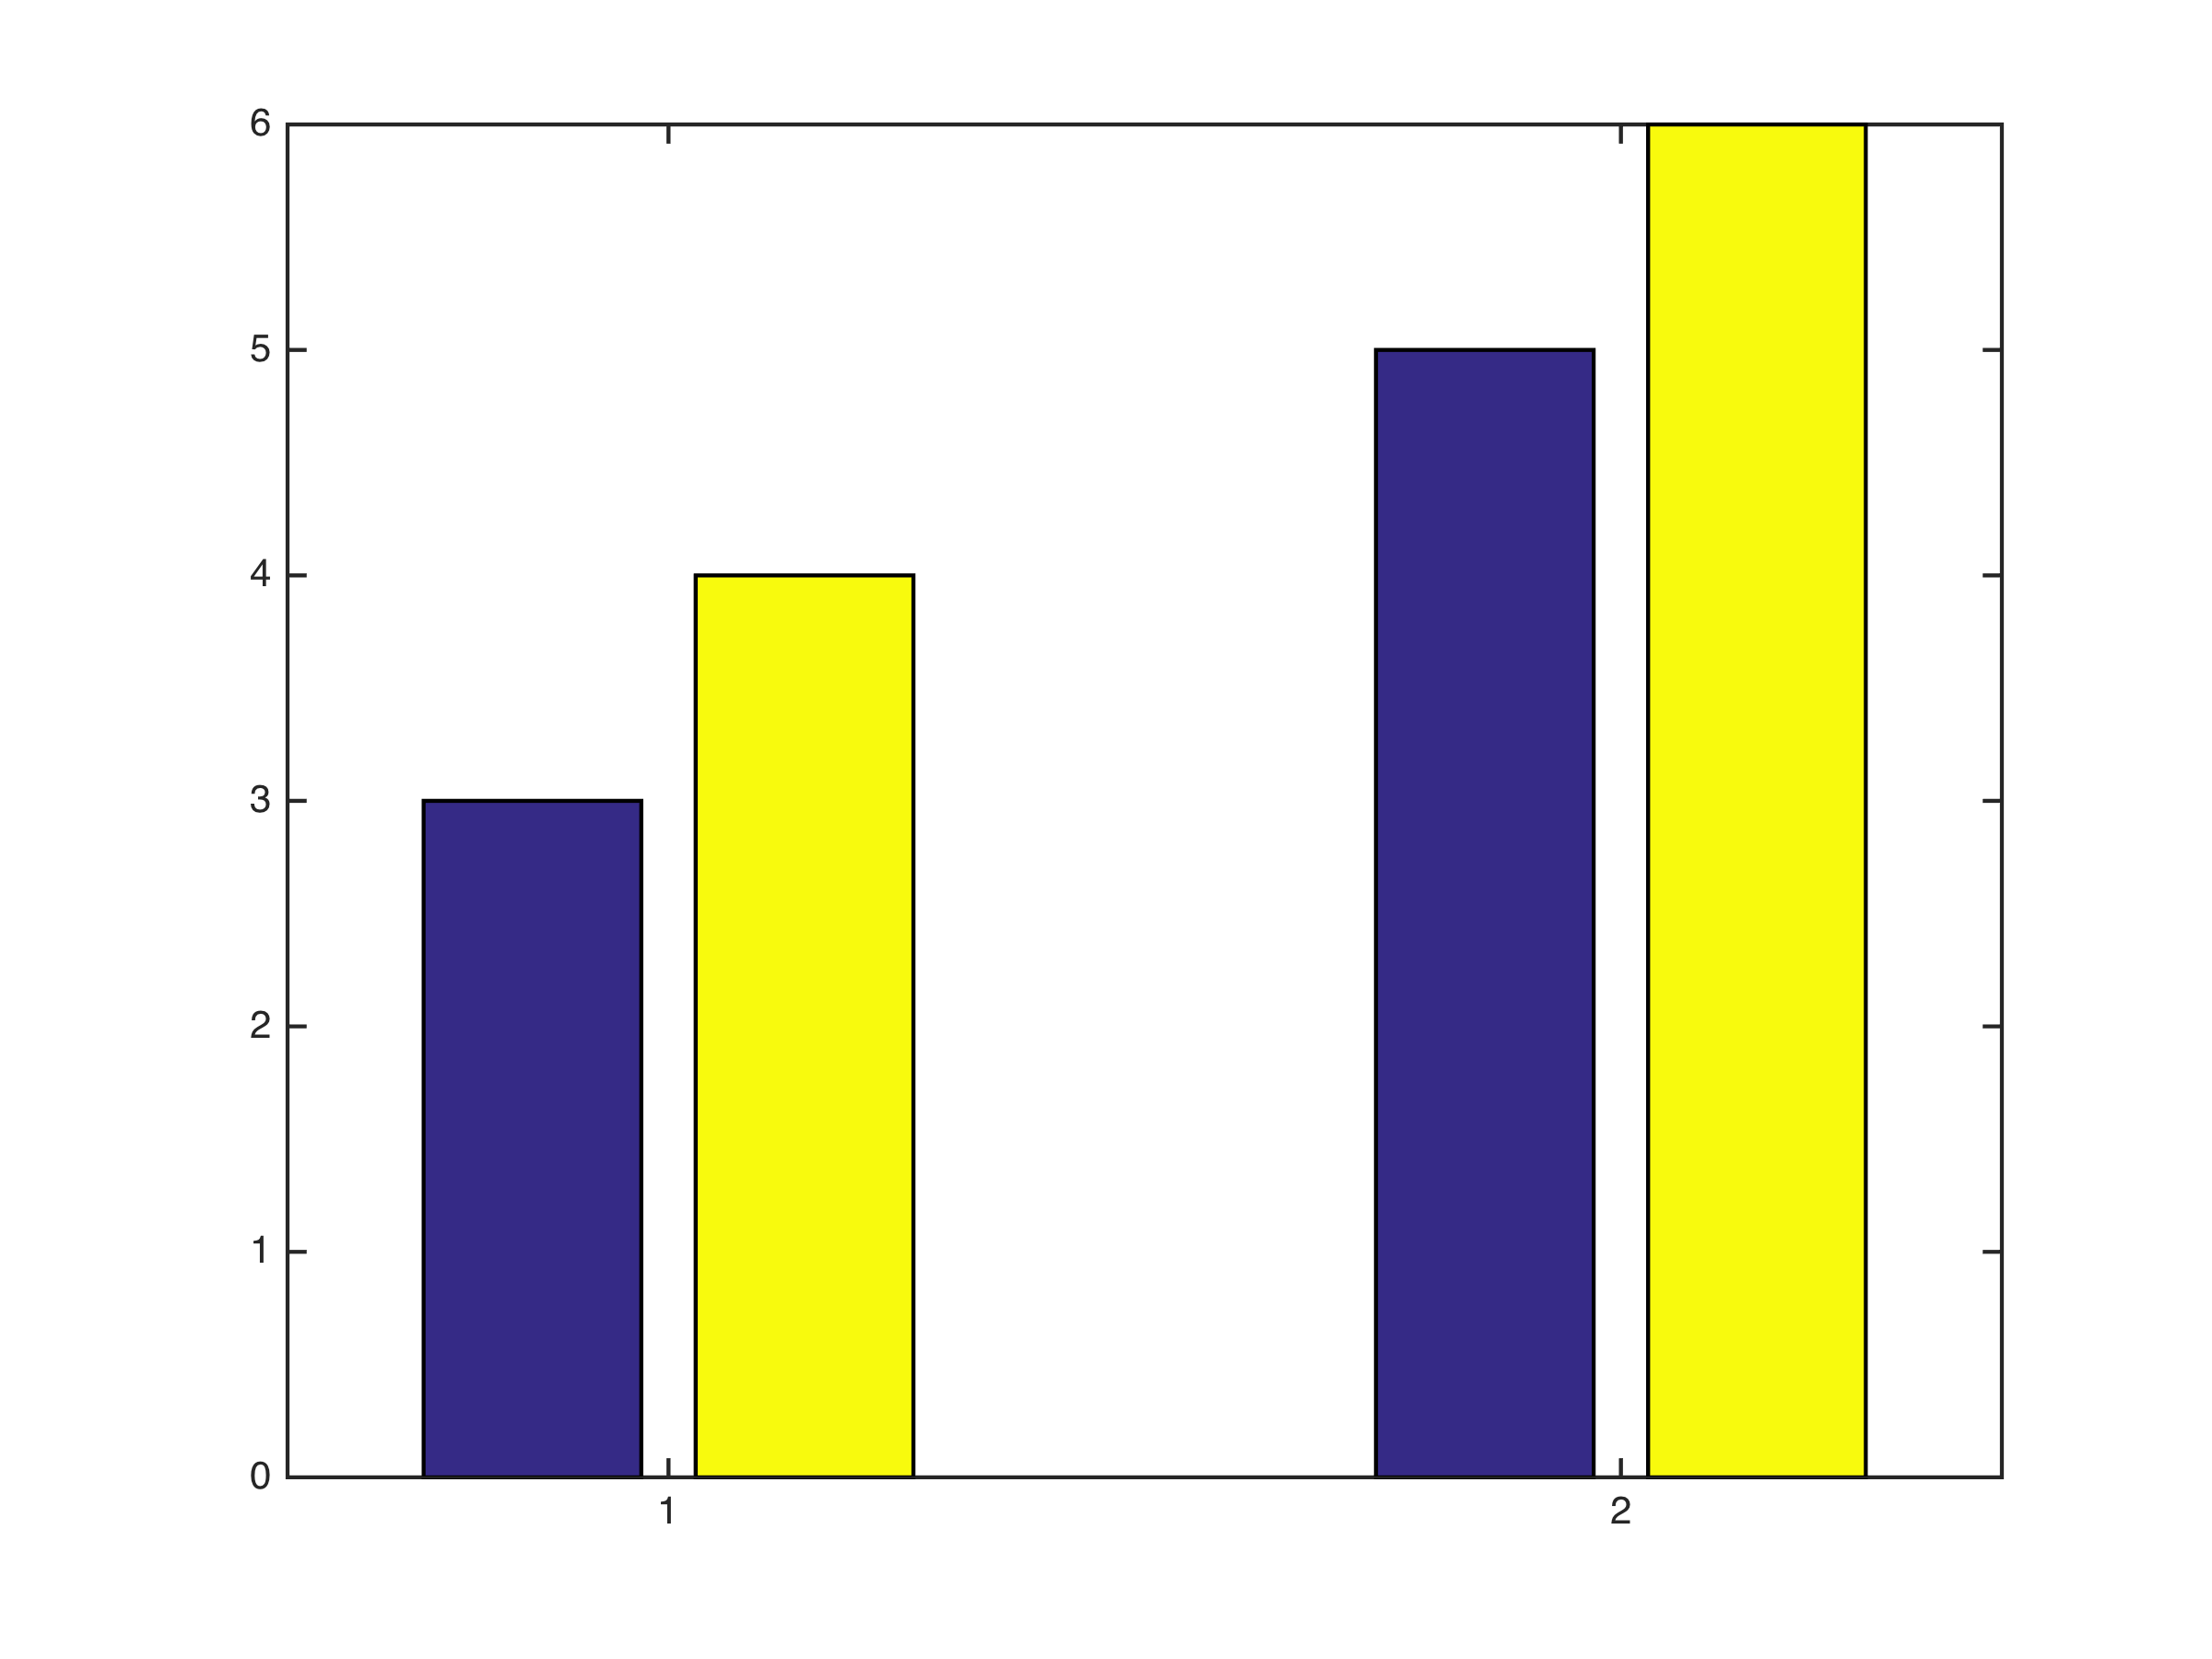 How Can I Programatically Find The Xaxis Locations Of Each Of The Bars? I  Don't Want X = [1 2] I Want The Actual Locations Of The Blue And Yellow  Bars